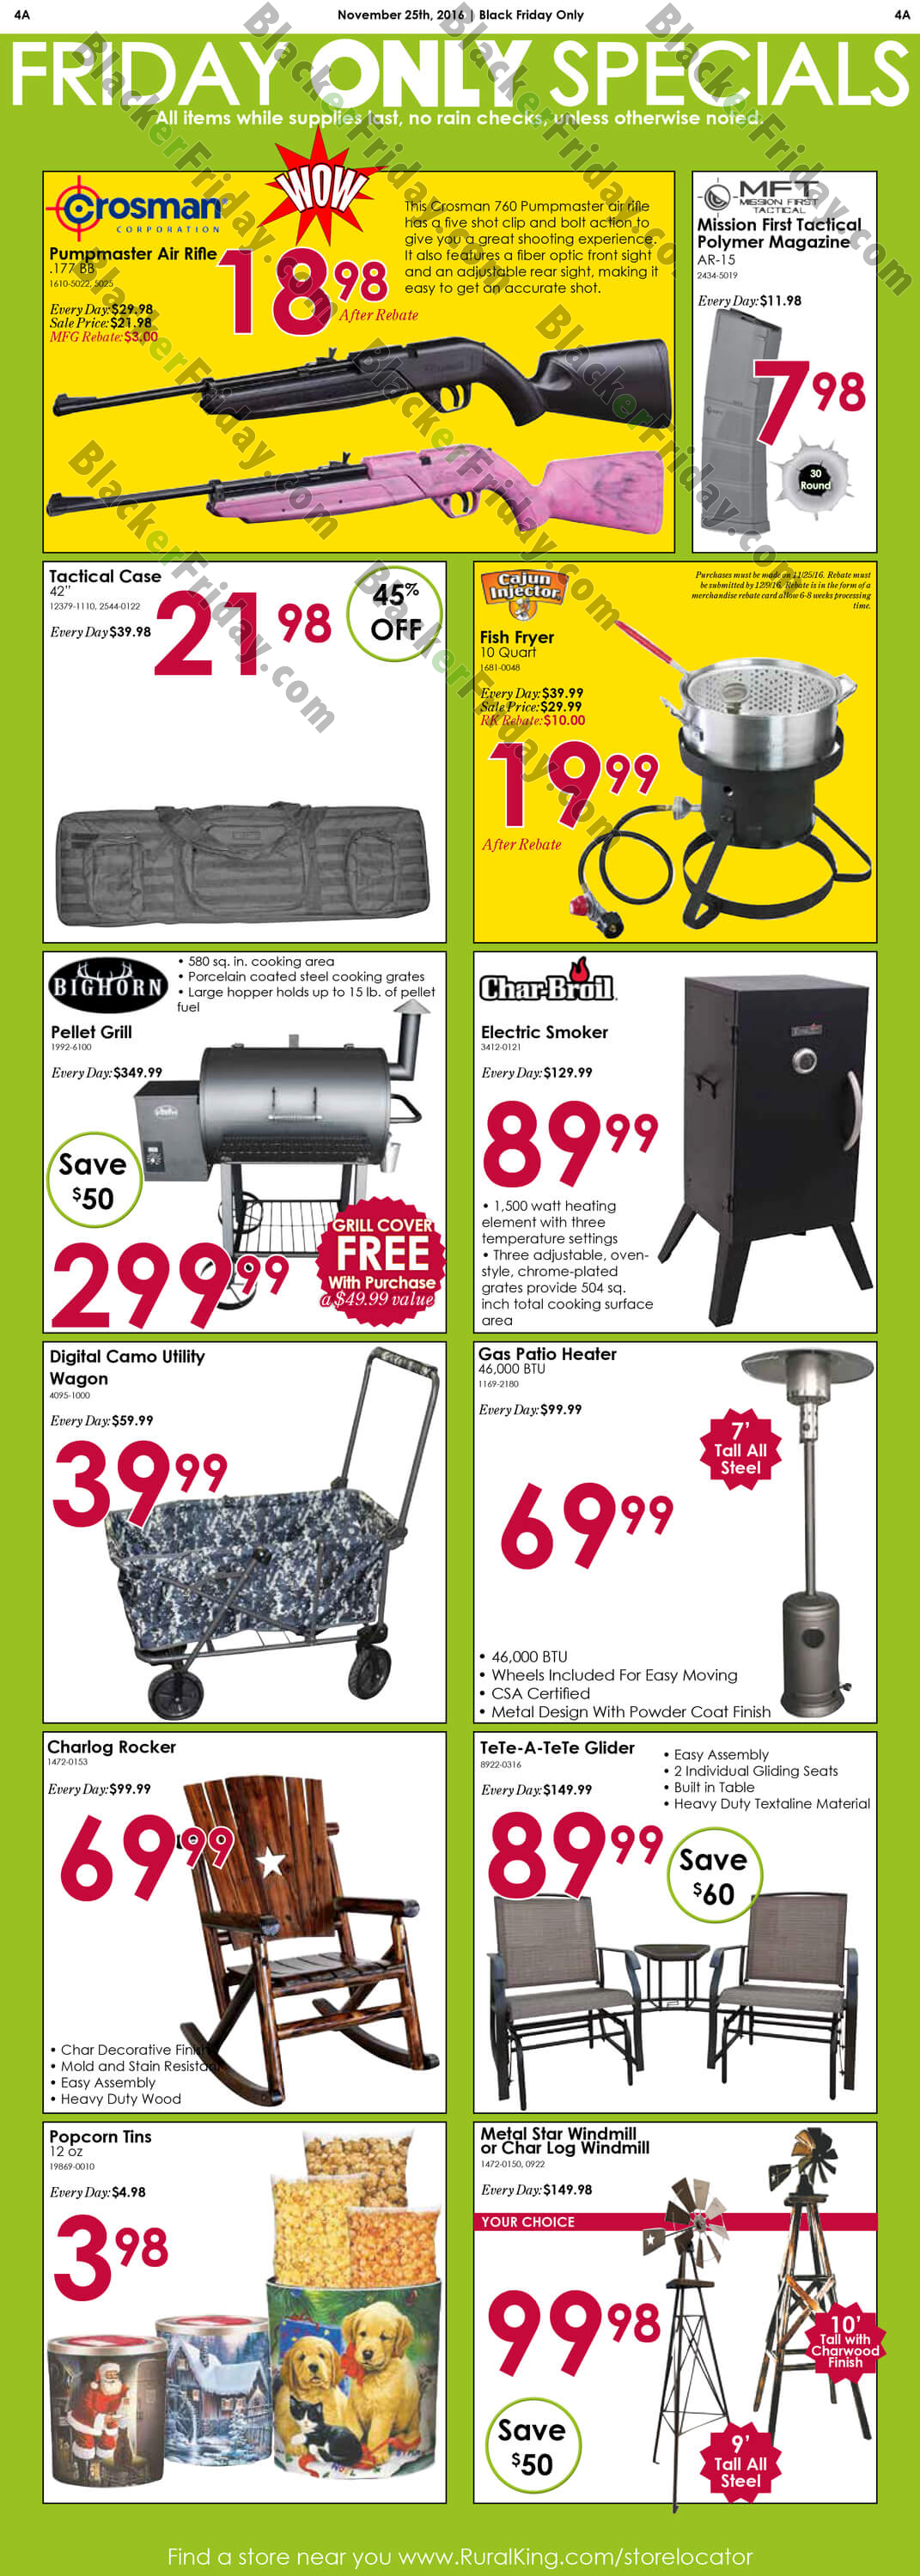 Rural King has released their Black Friday ad for ! Their sale will kick off with Thanksgiving Day savings that you'll only be able to find on November 22nd. You'll also find a coupon on the first page that you can use in-stores to get 10% off your entire purchase on Thanksgiving! Their Black Friday sale will be a two-day event on both 3/5(5).